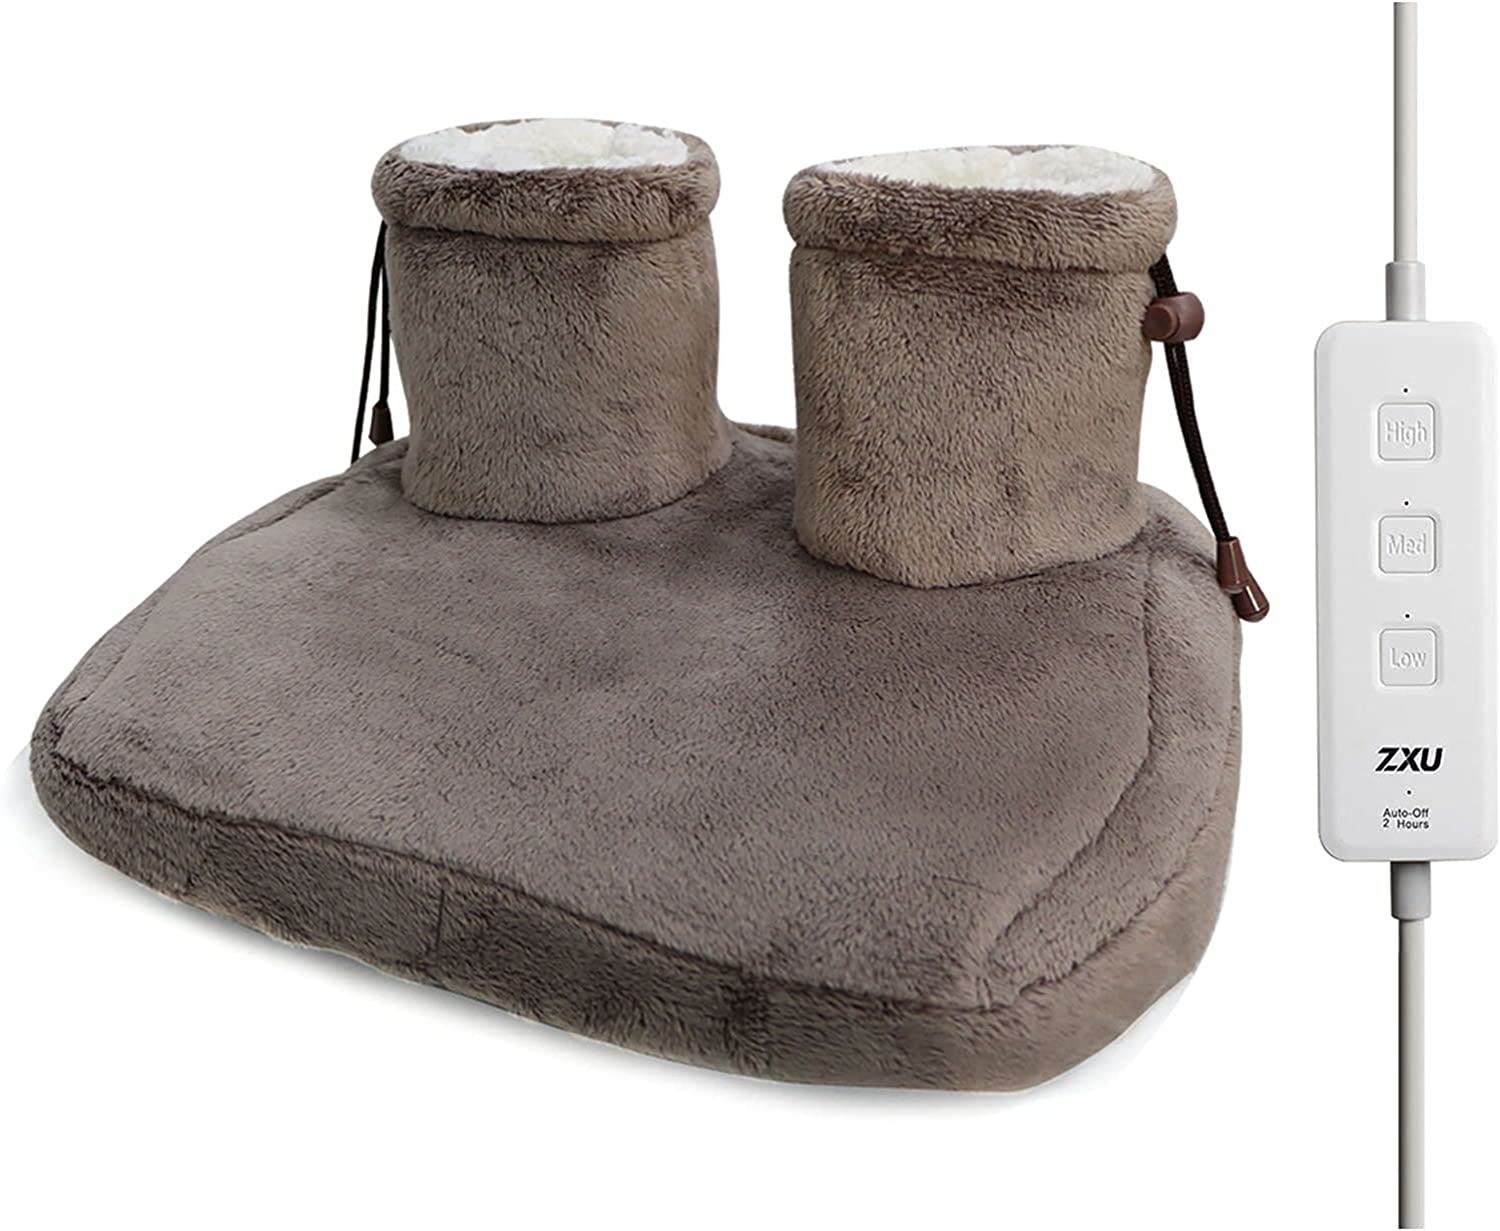 Electric Foot Warmers- Heated Slippers, 3 Temperature Settings,Super-Soft Sherpa-Lined, Machine-Washable Fabric, Auto Shut-Off Foot Heating Pad Under Desk for Men and Women